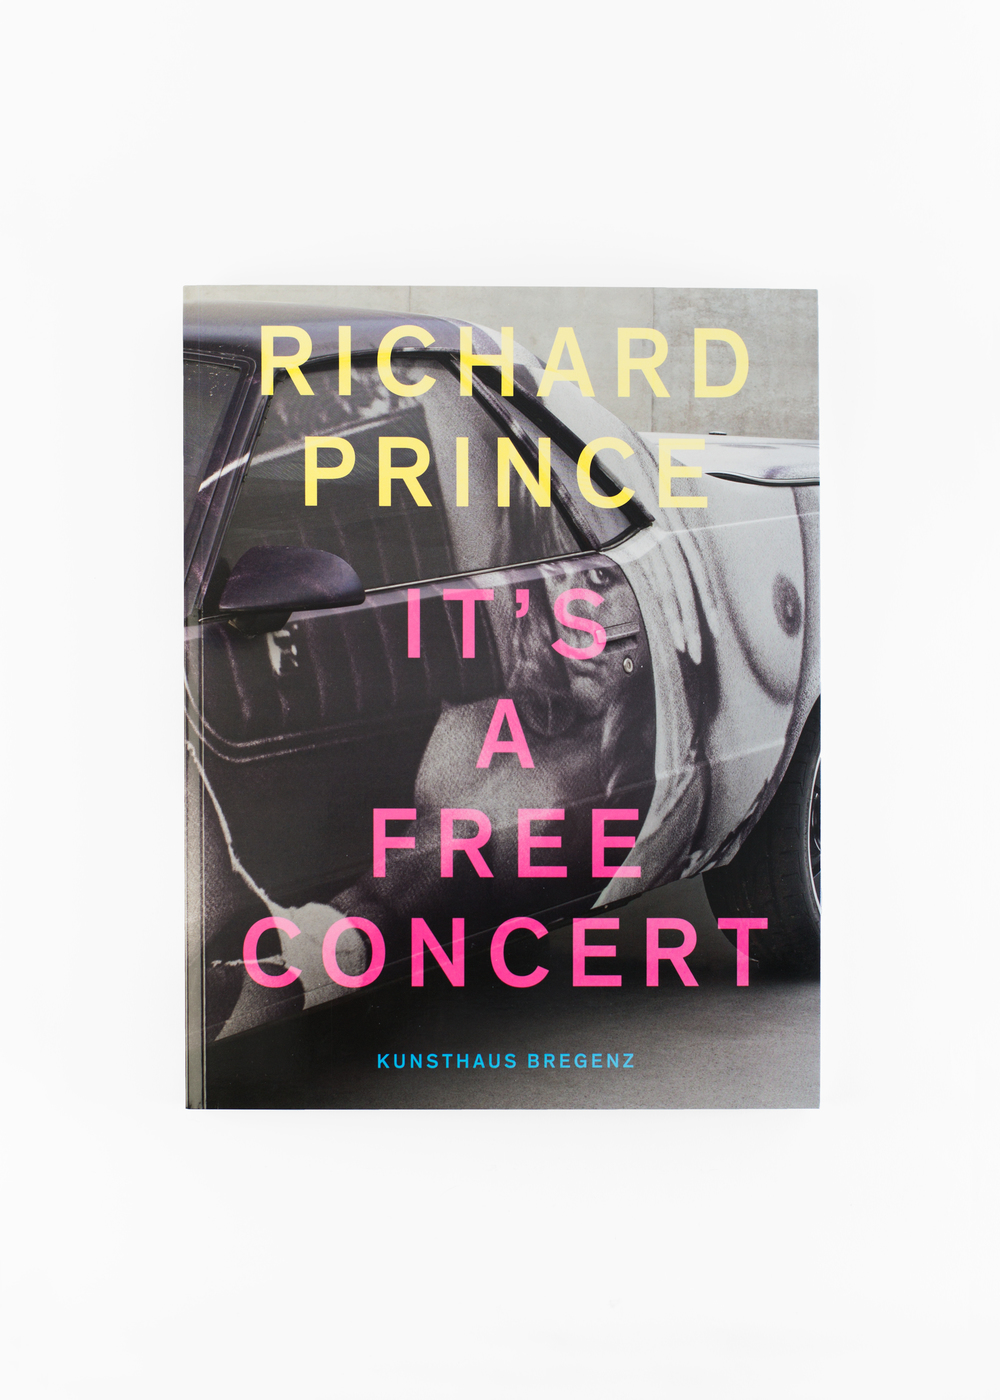 "Richard Prince - It's A Free Concert</br>256 pages 23.5 x 30.5 cm</br>2015</br>€50 <a href=""https://www.paypal.com/cgi-bin/webscr?cmd=_s-xclick&hosted_button_id=EP3F5975DL572"">Add to Cart</a>"